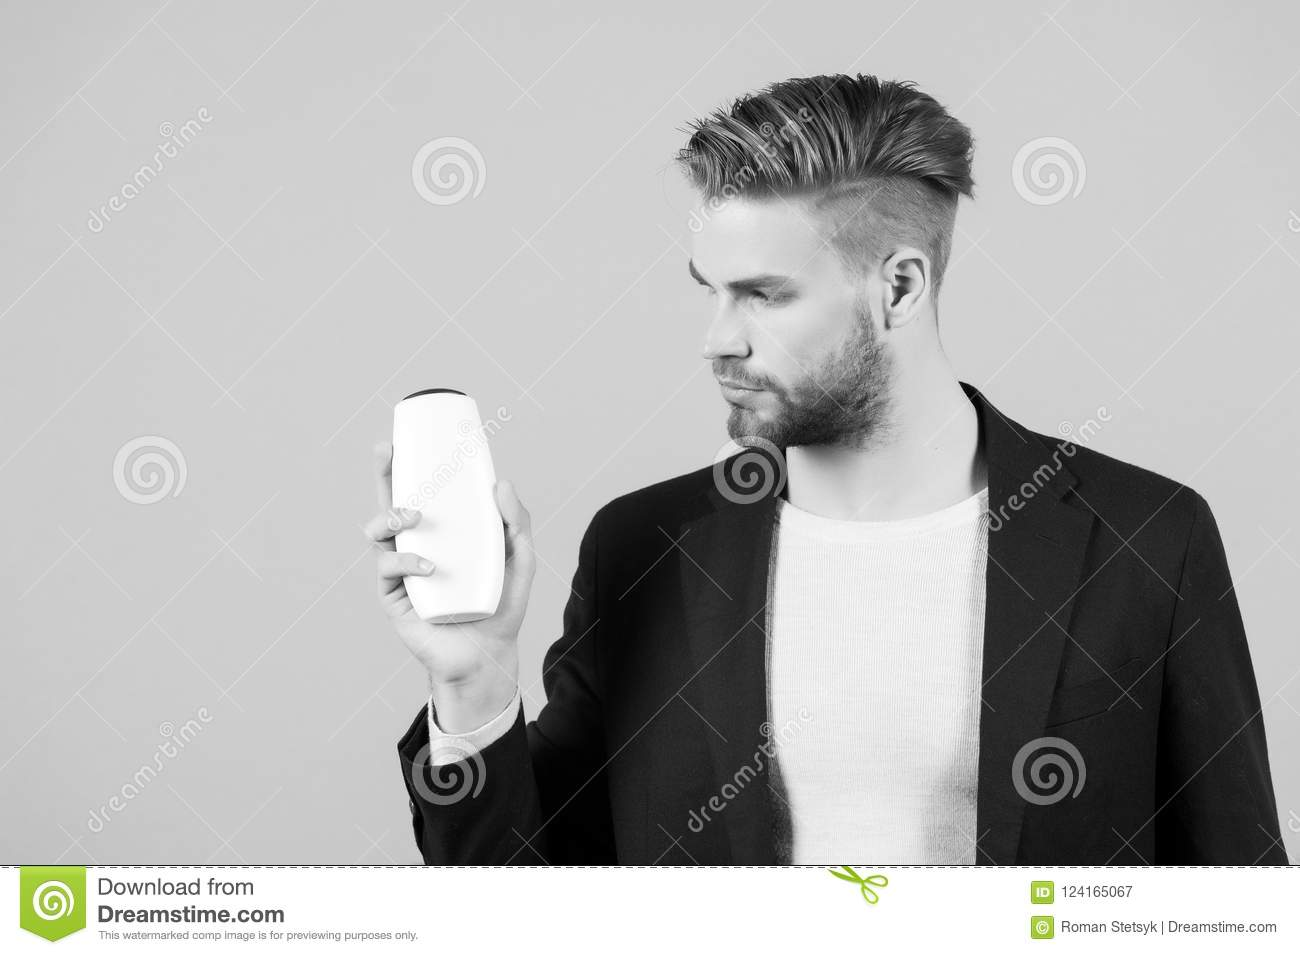 Businessman With Shampoo Or Gel Bottle In Hand Spa Stock Image